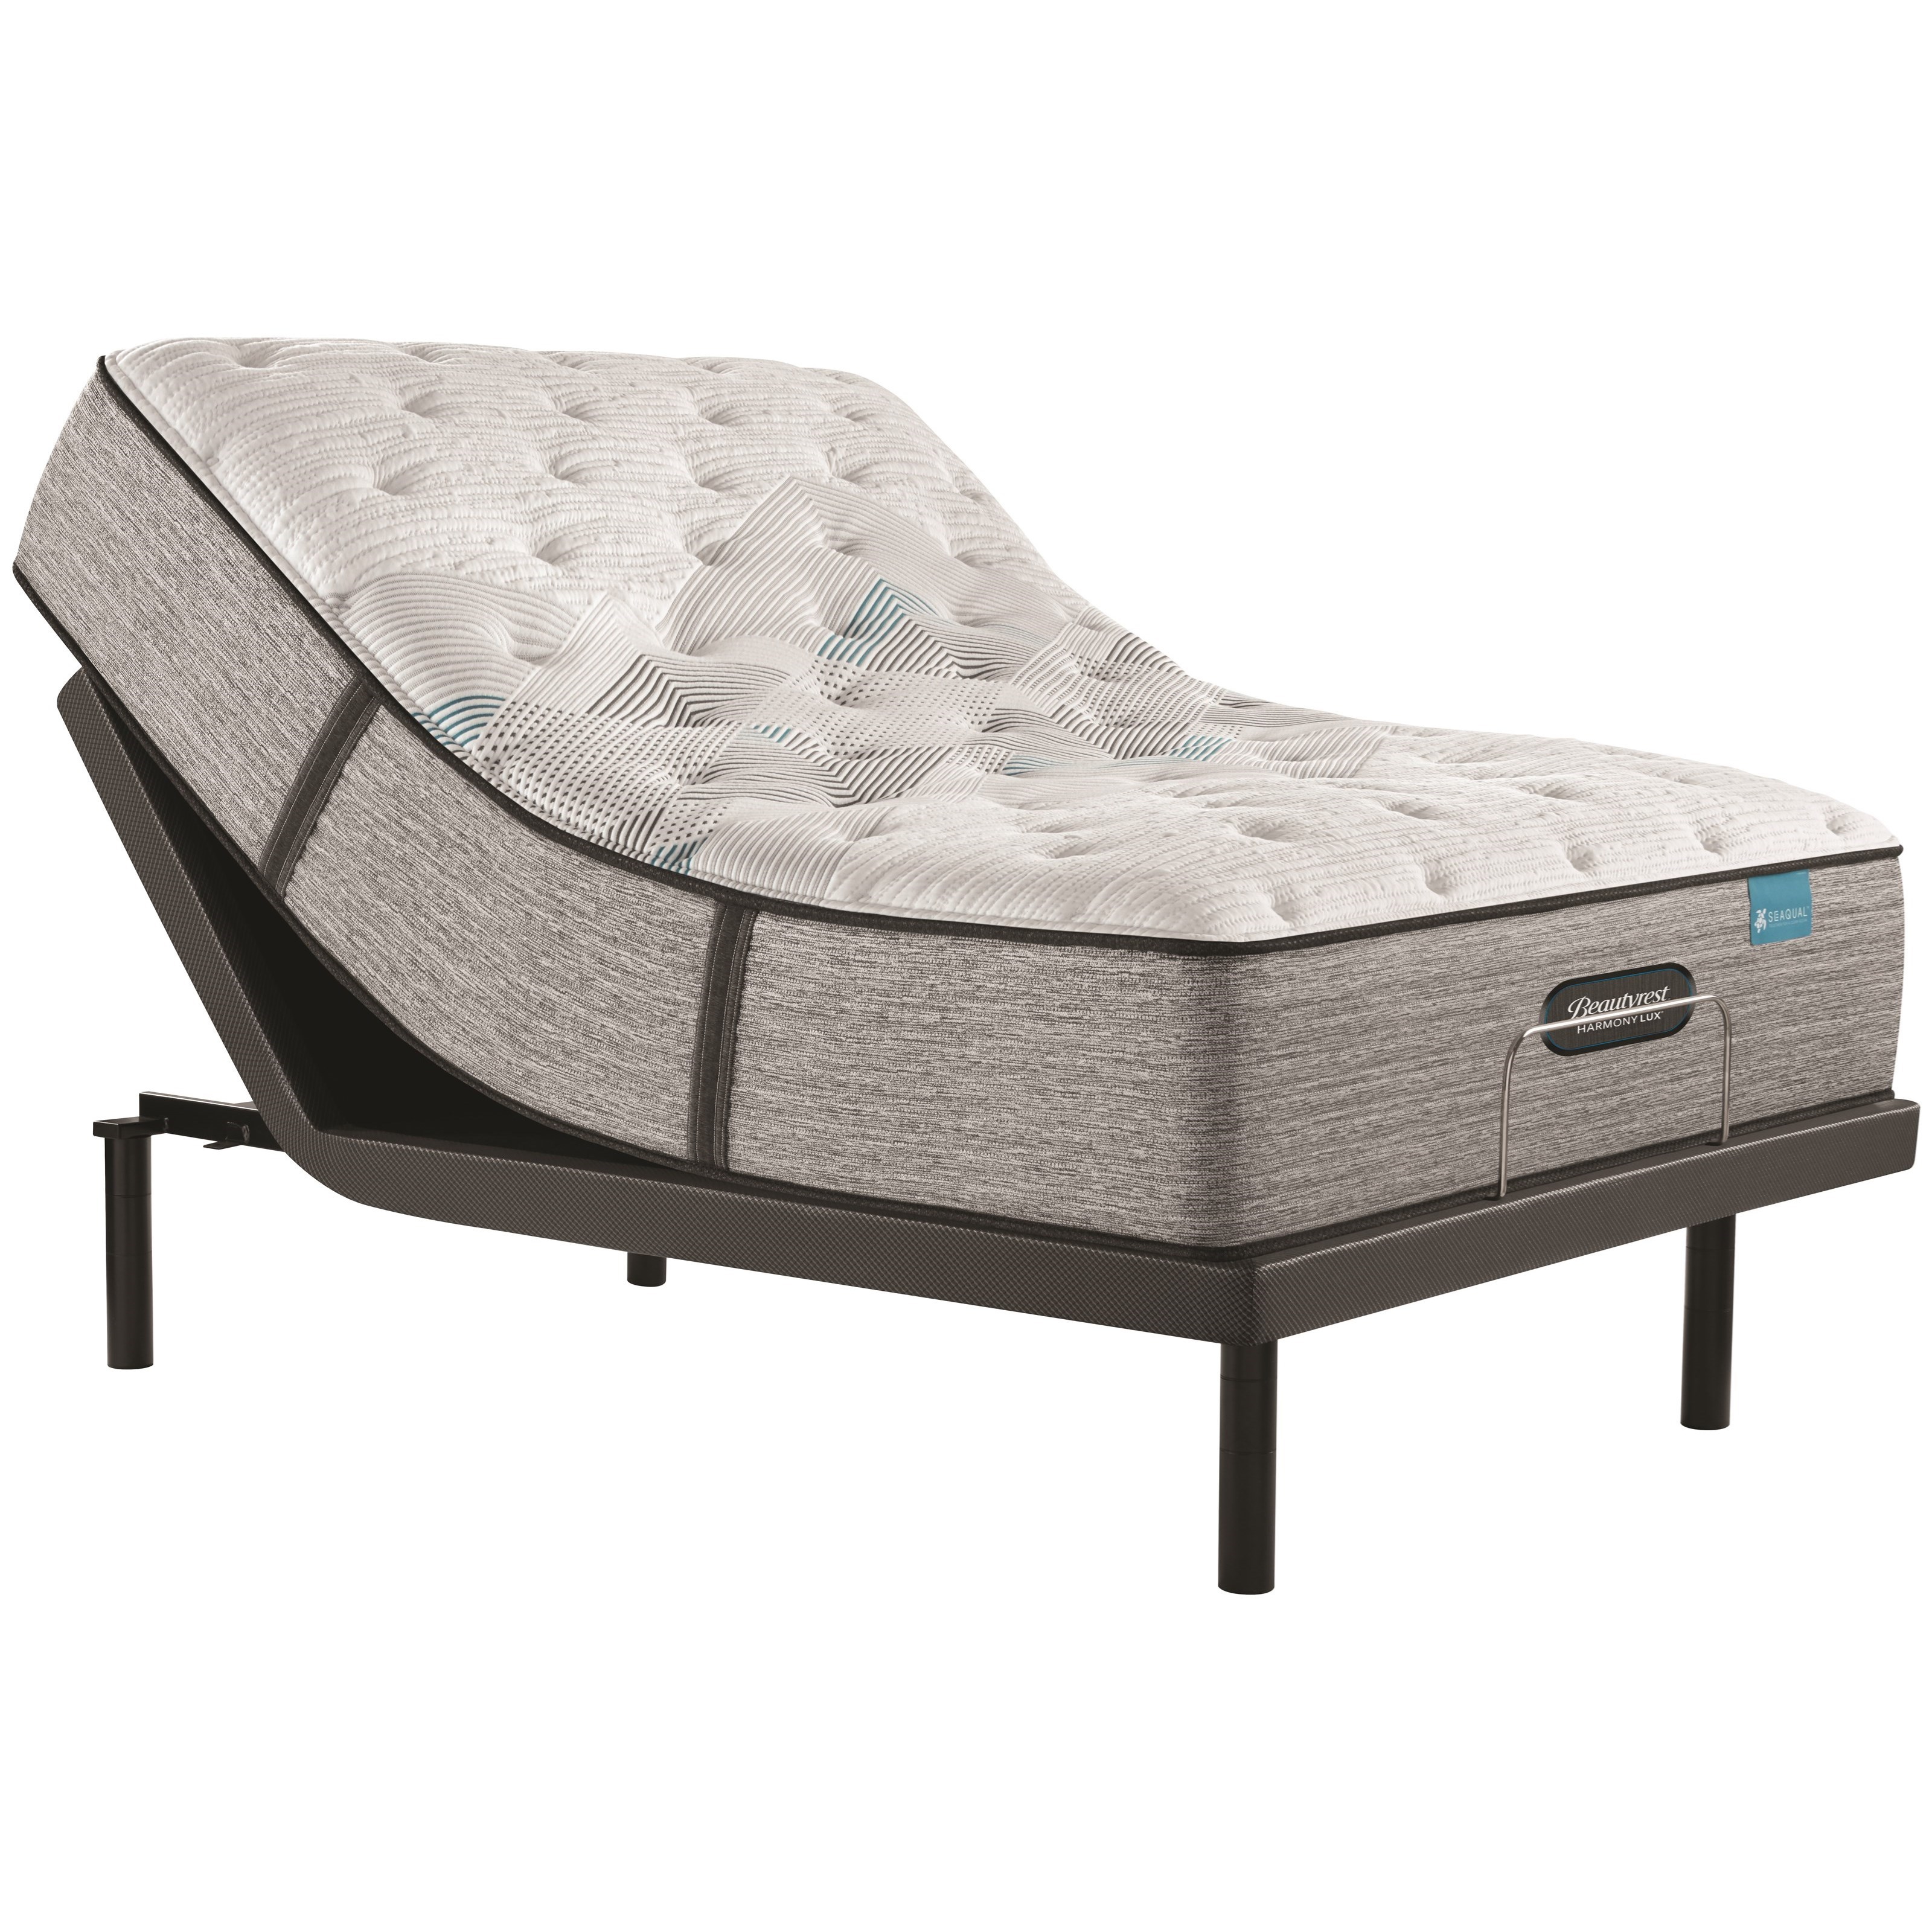 "Carbon Series Medium Twin XL 13 3/4"" Medium Adj Set by Beautyrest at Walker's Mattress"